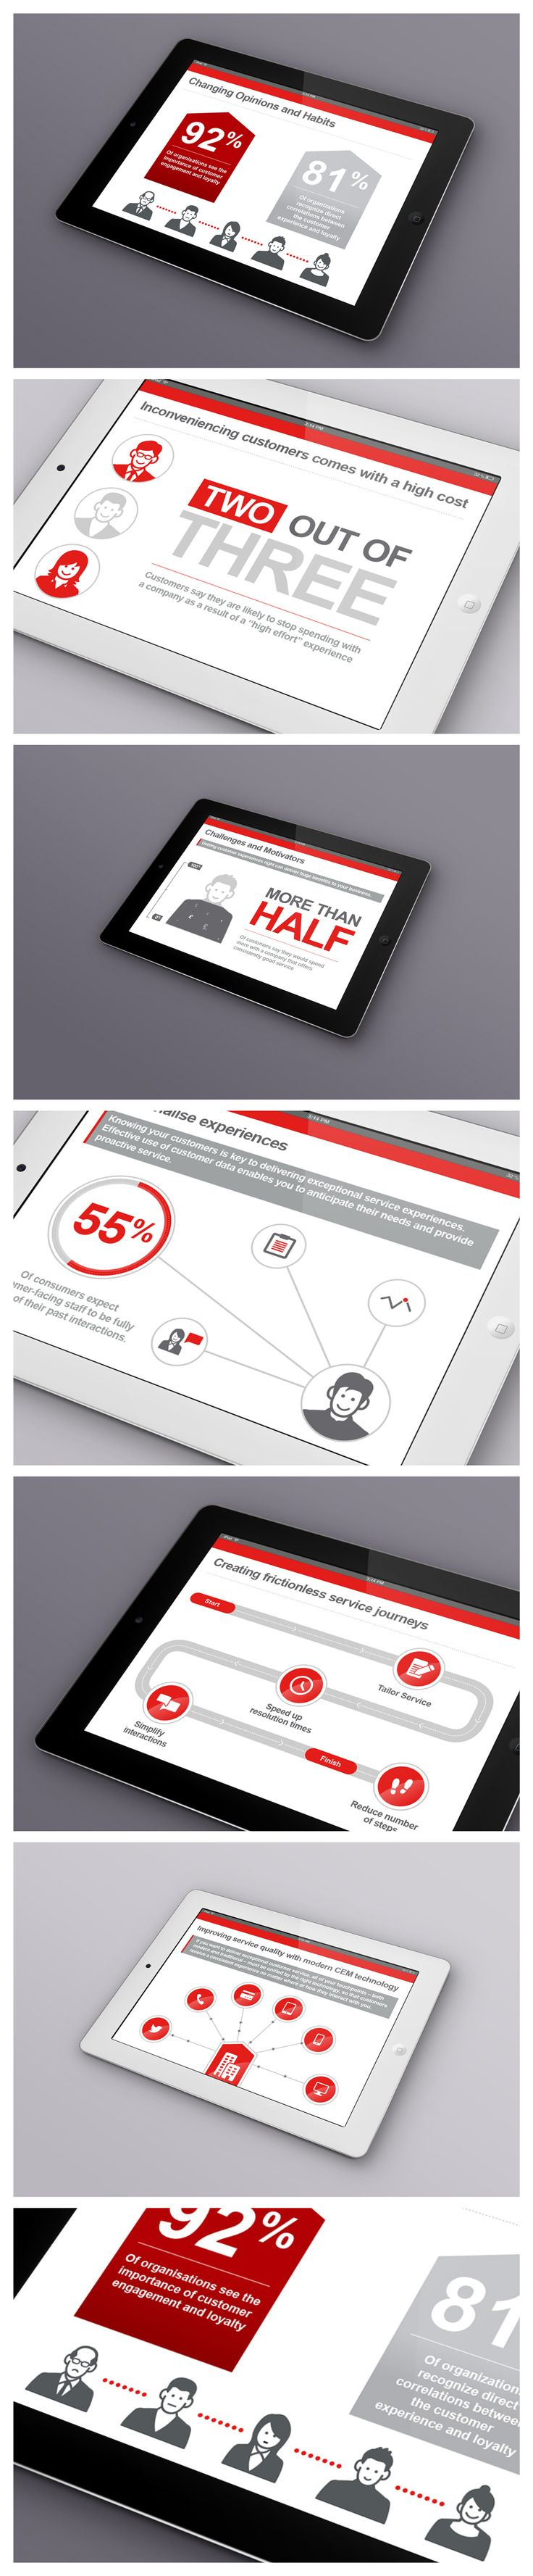 PowerPoint Presentation | Icons | Infographics | Stats | Percentages